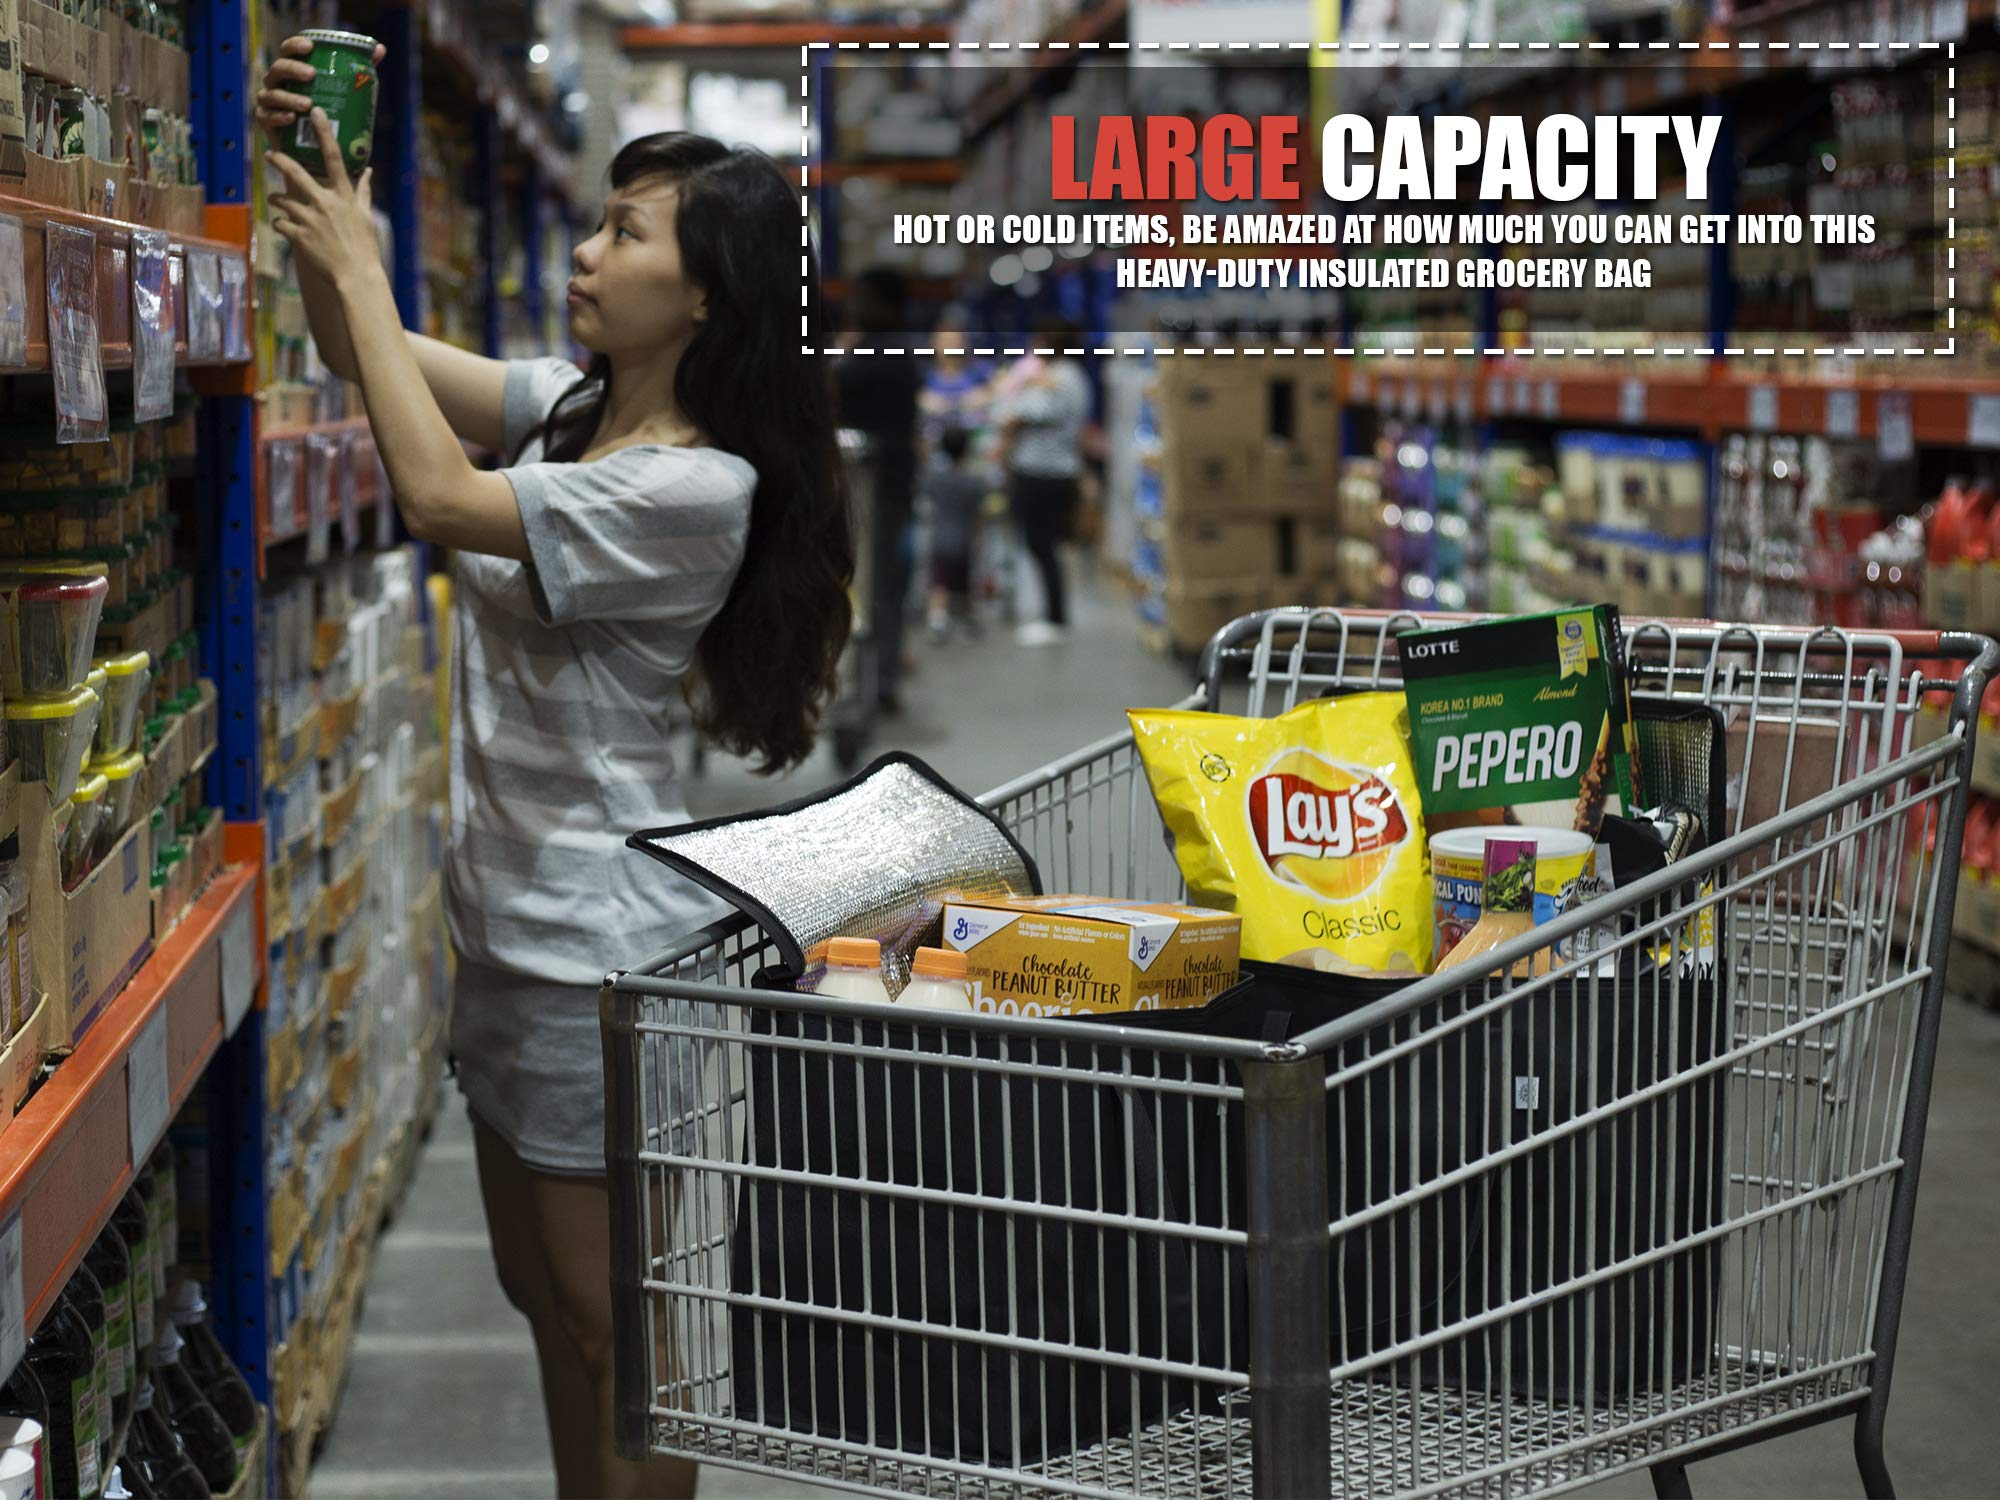 2 Pack Reusable Grocery Tote Bag by Ks Country - Collapsible and Stands Upright with Durable Zippers and Large Reinforced Handles for Extra Strength - Sturdy and Insulated to Keep Foods Cold or Hot by Ks Country (Image #8)